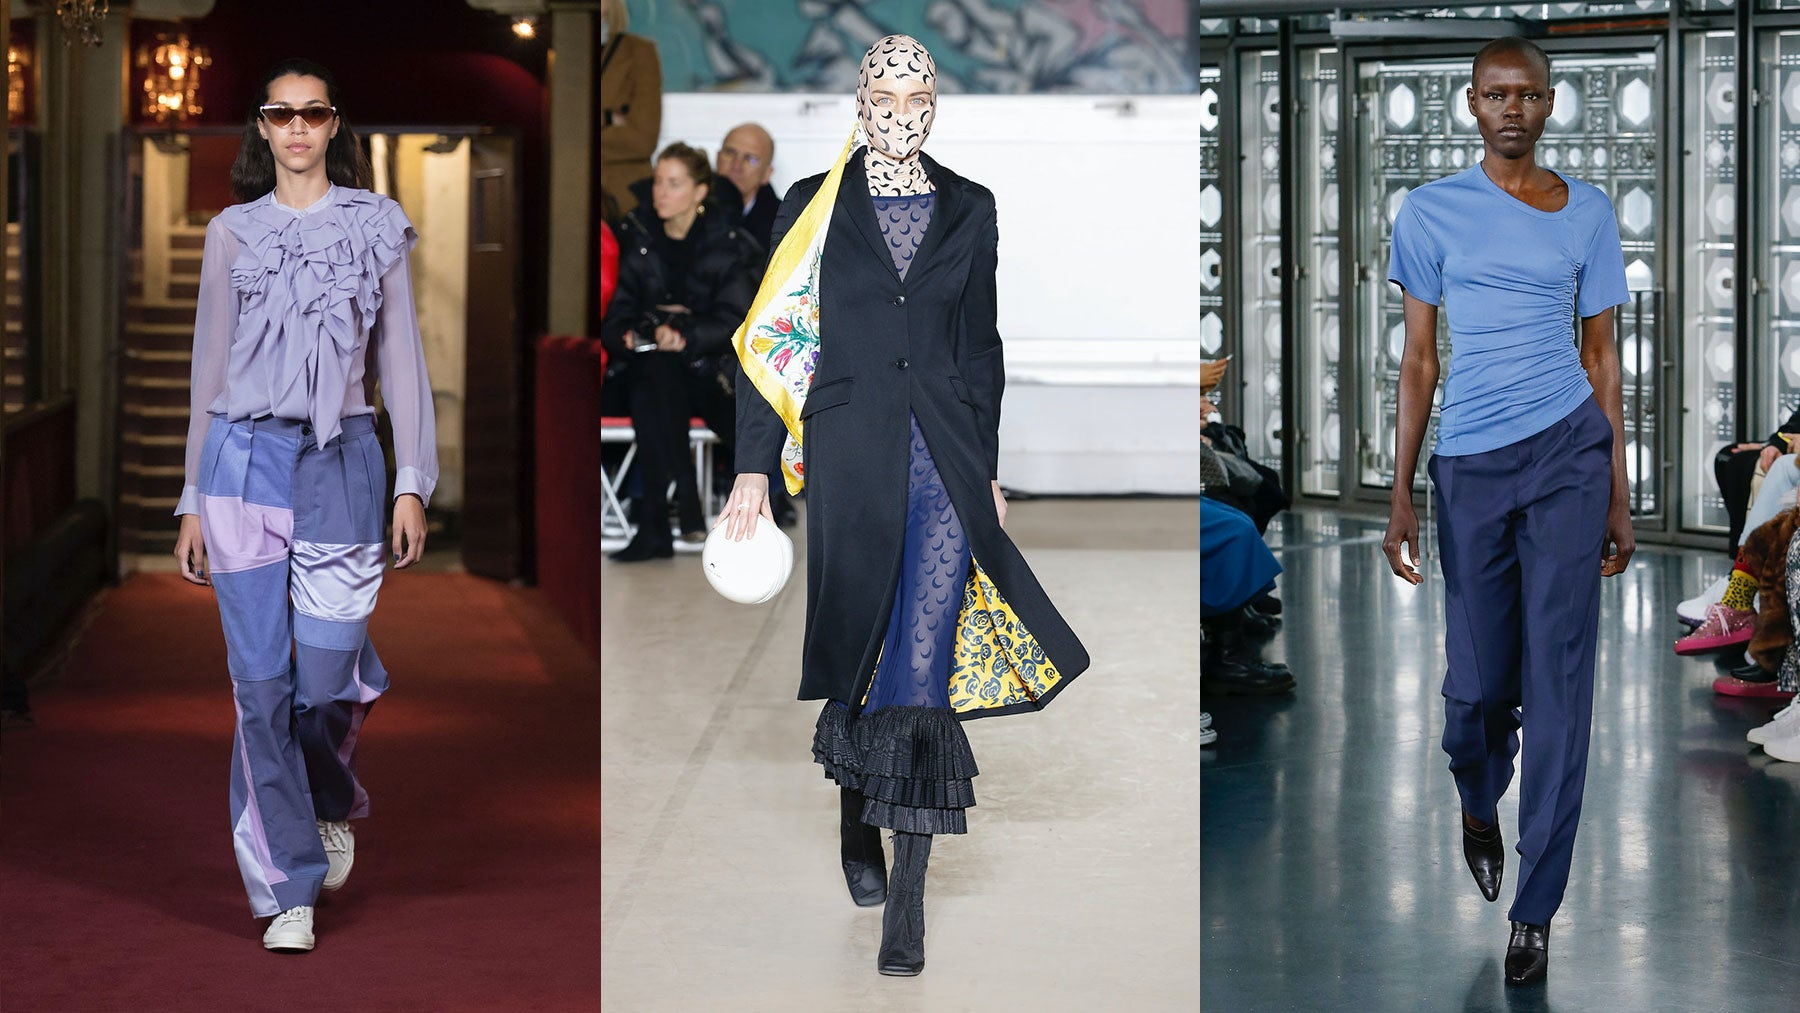 Autumn/Winter 2018 catwalk looks by Koché, Marine Serre and Atlein   Sources: Courtesy, Indigial, Indigital